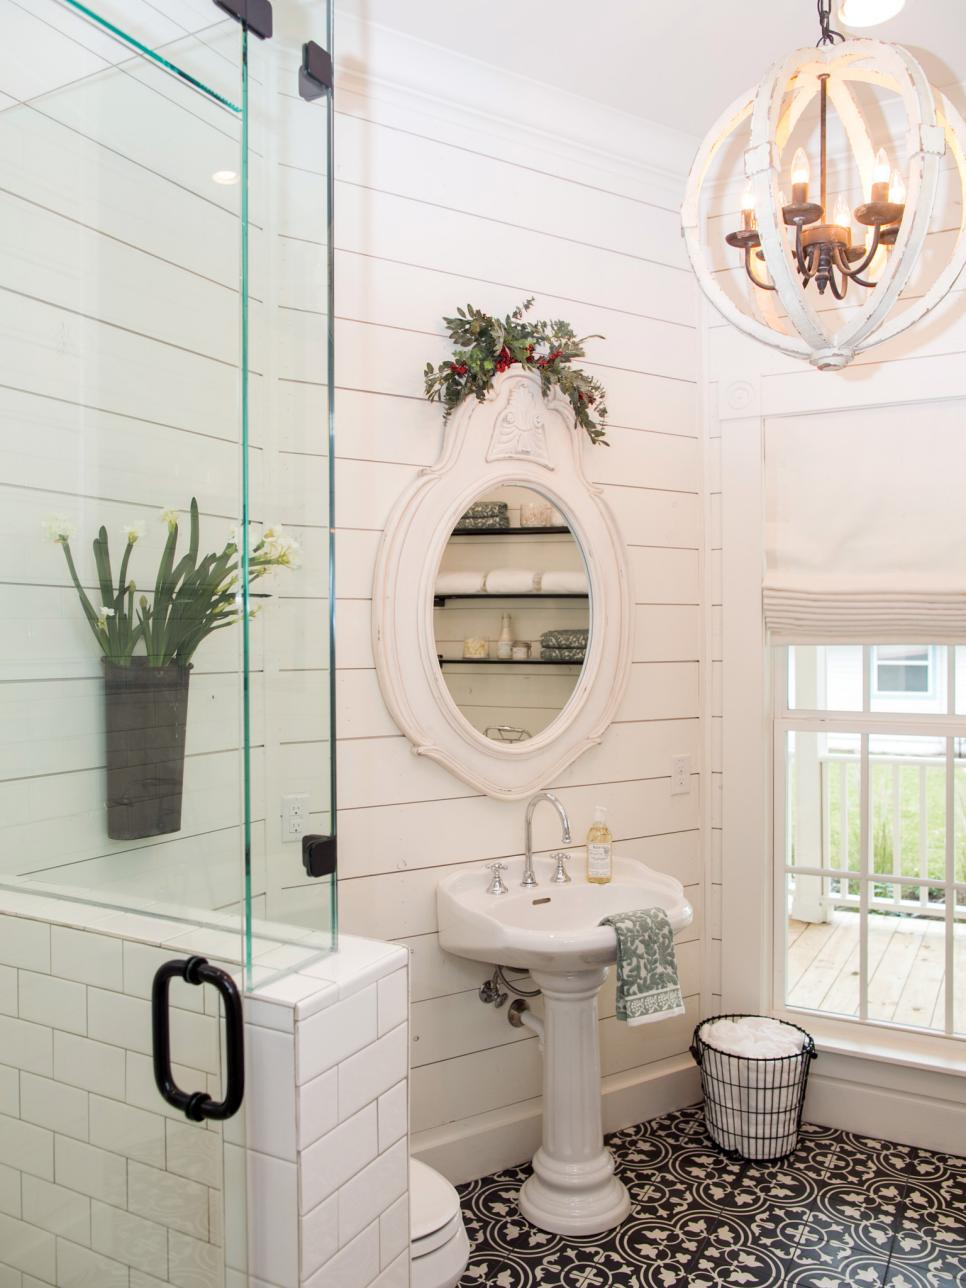 Windmill farm remodeling hall bathroom again for Joanna gaines bathroom designs